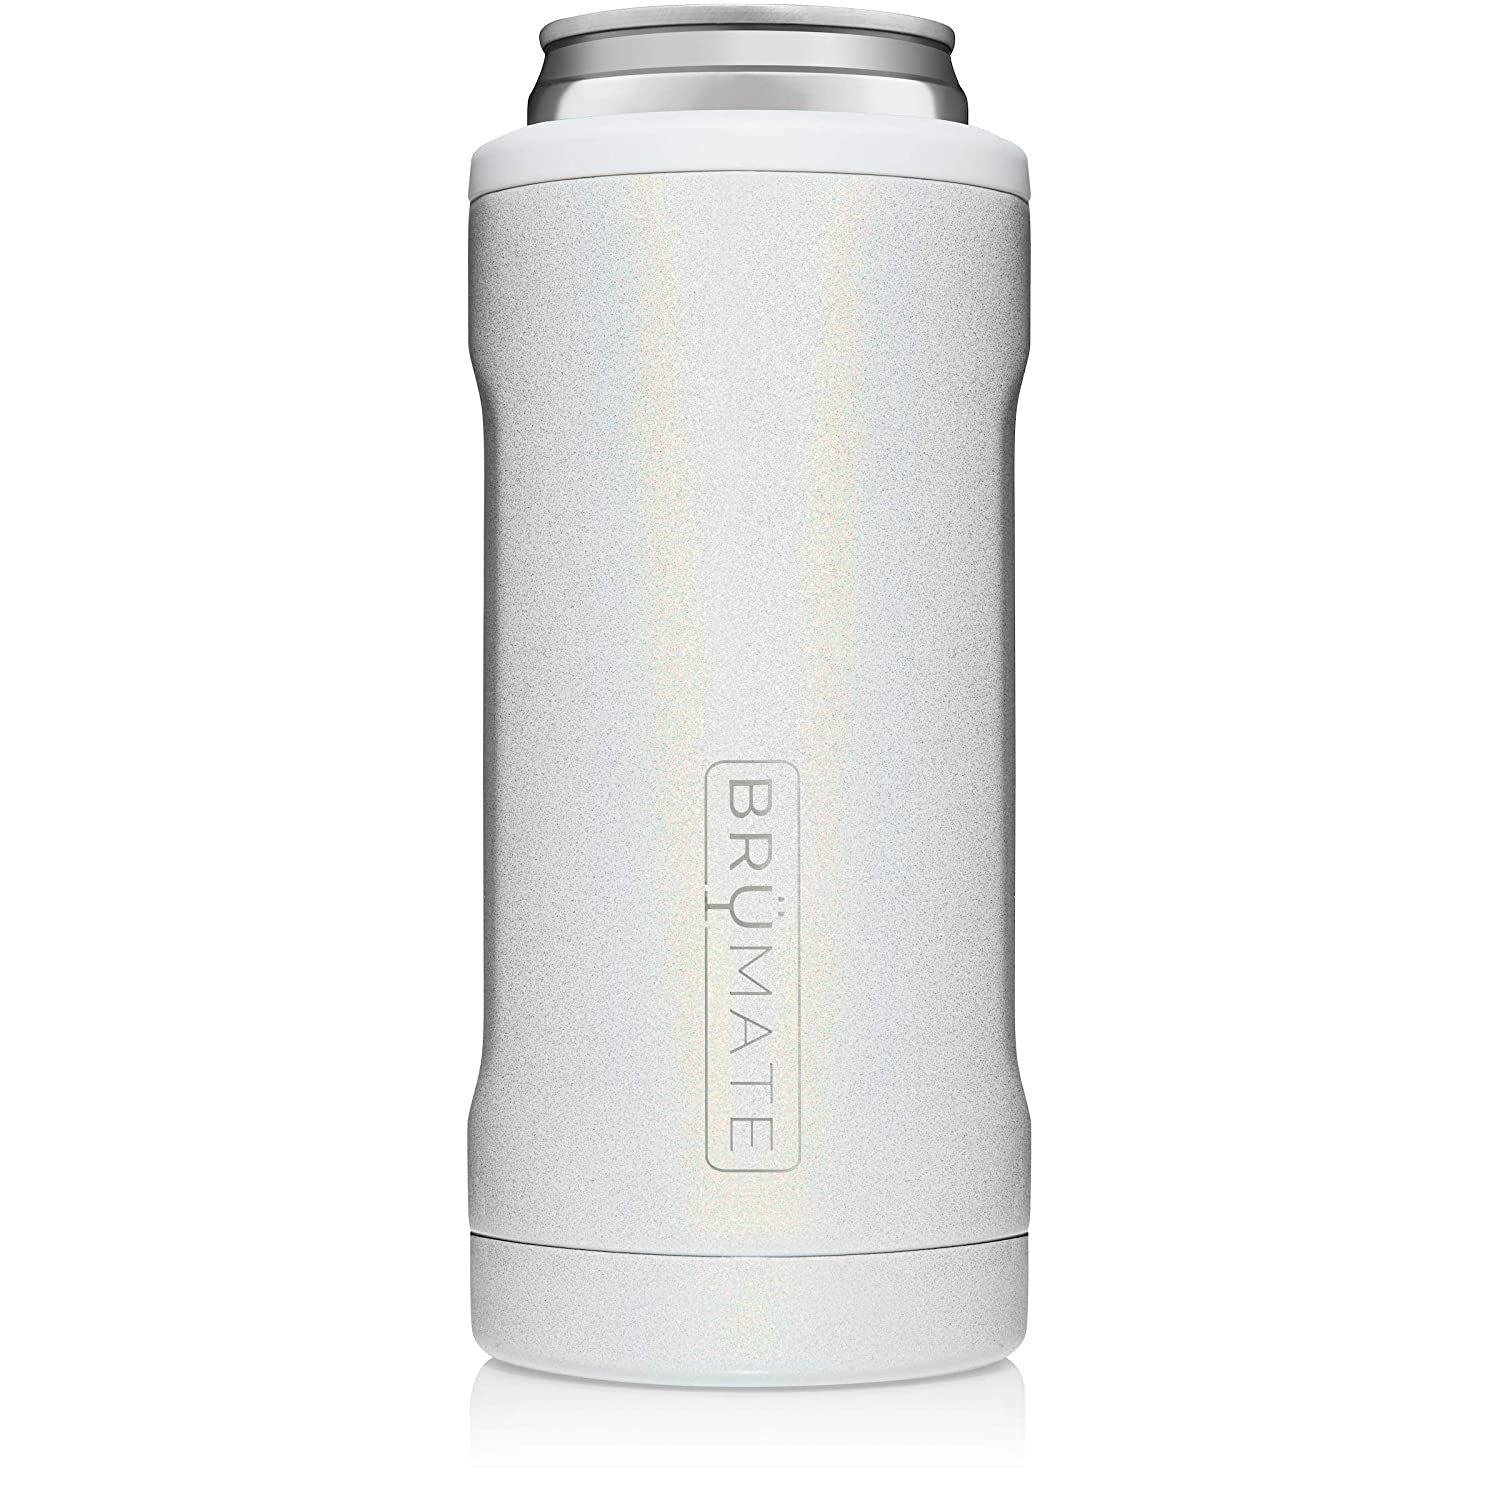 BrüMate Hopsulator Slim Double-walled Stainless Steel Insulated Can Cooler for 12 Oz Slim Cans (Glitter White)